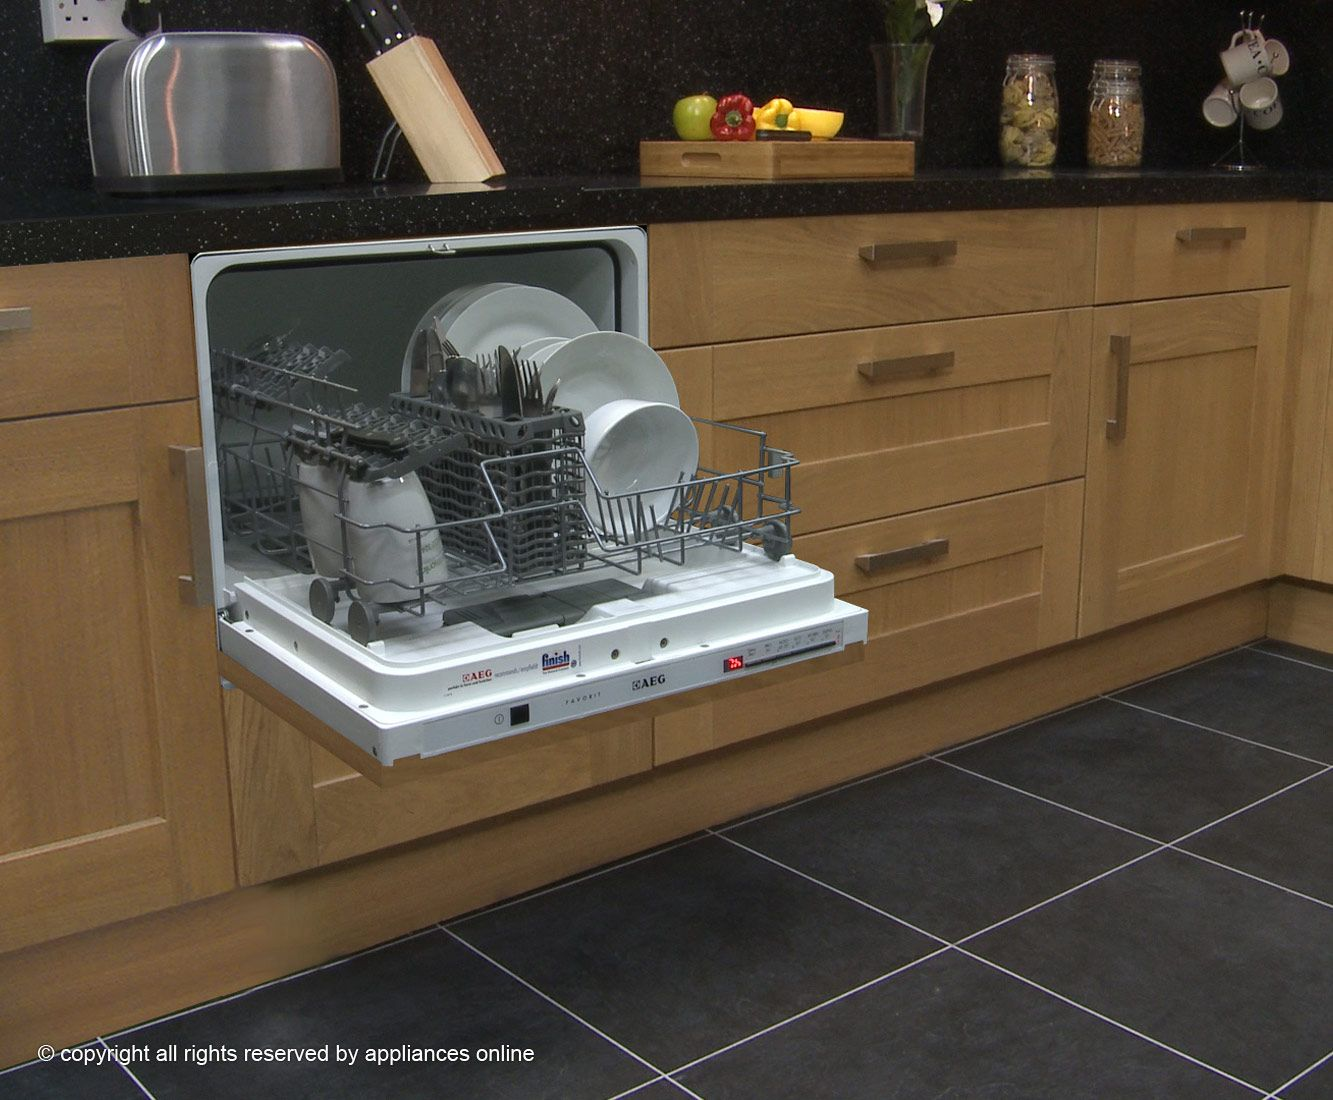 Compact Dishwasher From Ao Would Be Great For A Tiny House